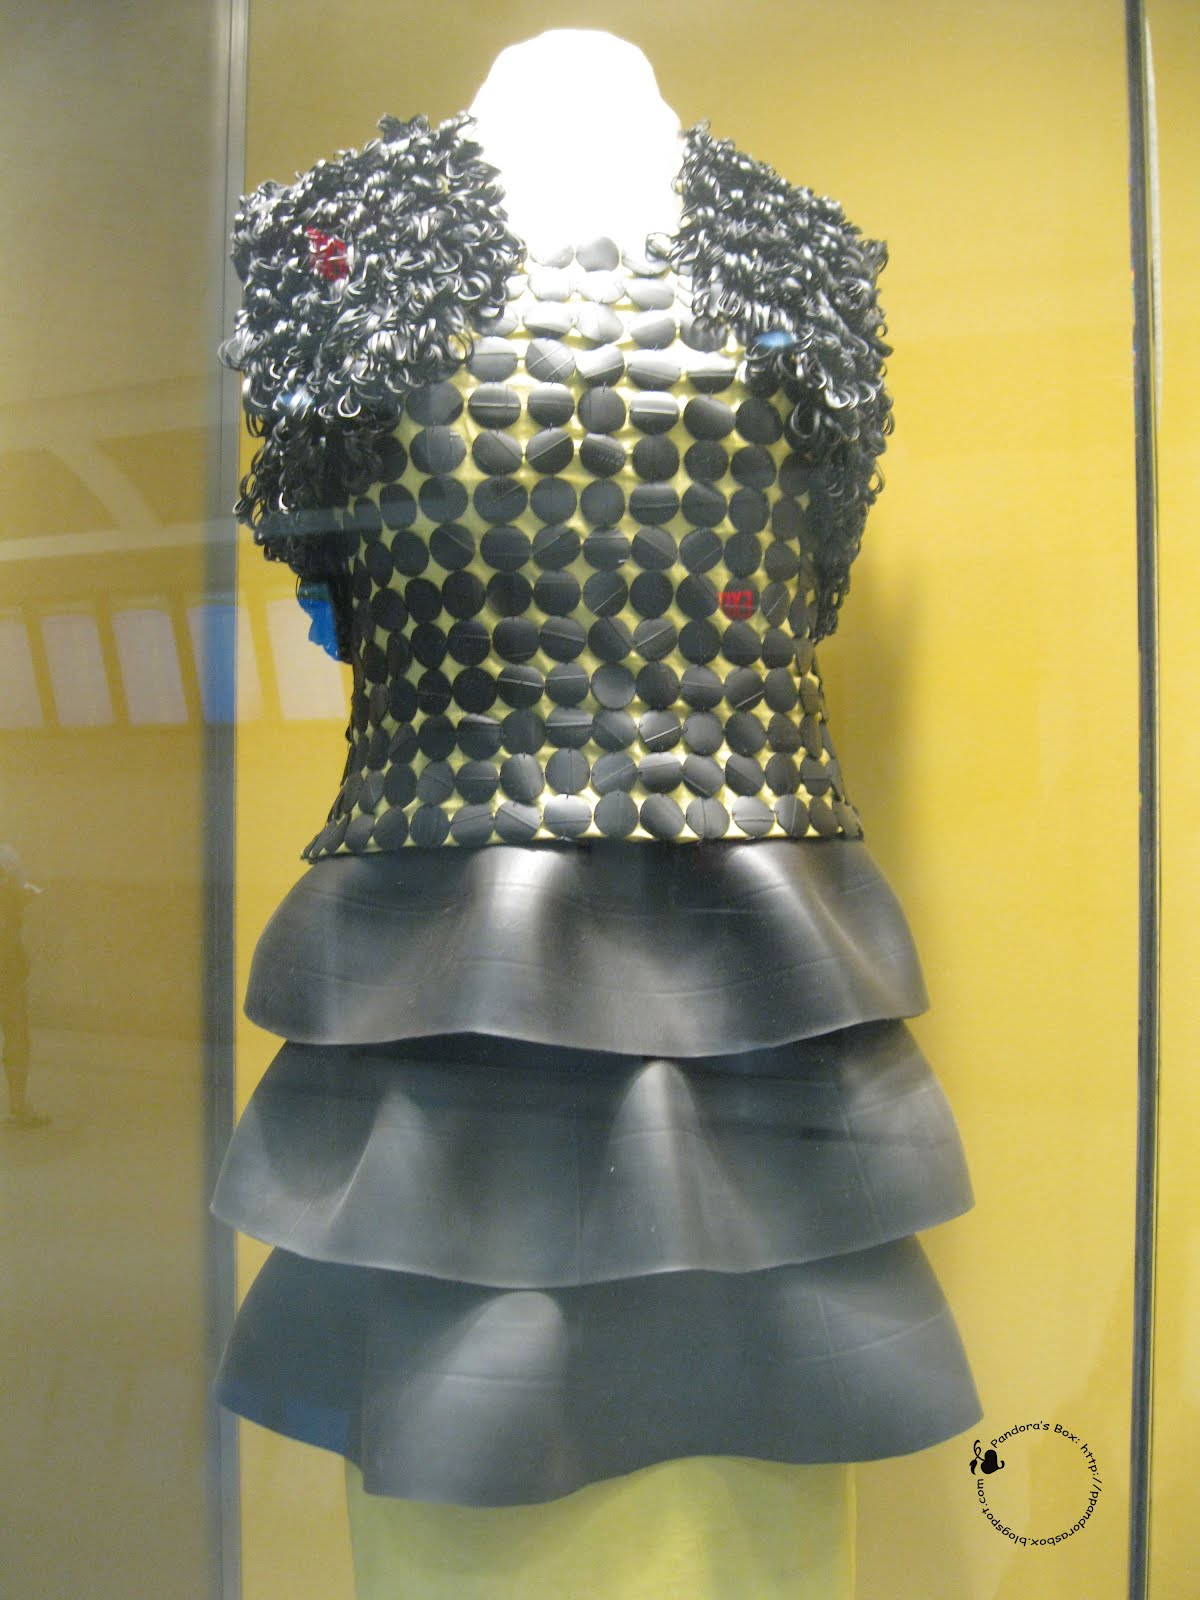 Pandora 39 s box recycled items made into clothing recycle runway - How to reuse old clothes well tailored ideas ...